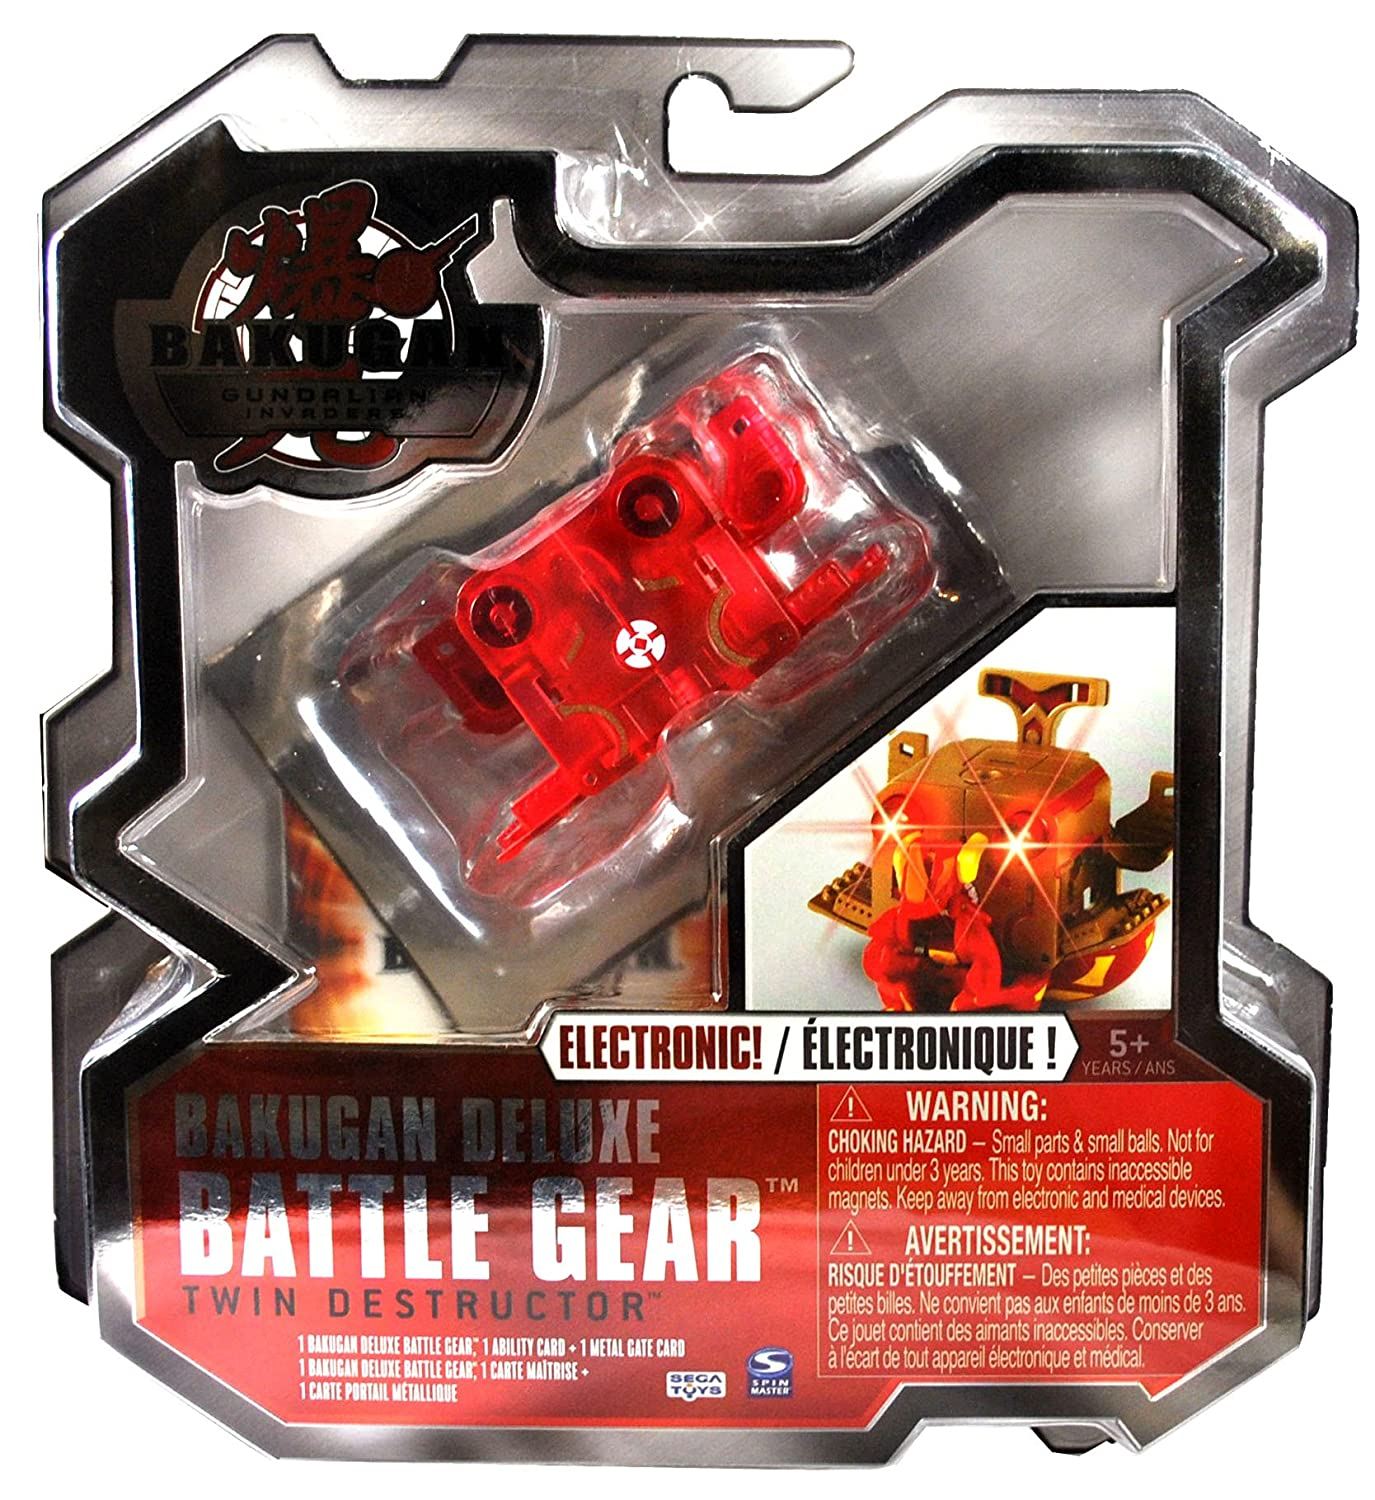 Spin Master Year 2010 Bakugan Gundalian Invaders Deluxe Electronic Battle Gear Set - Double Cannon TWIN DESTRUCTOR (Gold - 90Gs) with 1 Ability Card and 1 Metal Gate Card by Bakugan B004R8JE30